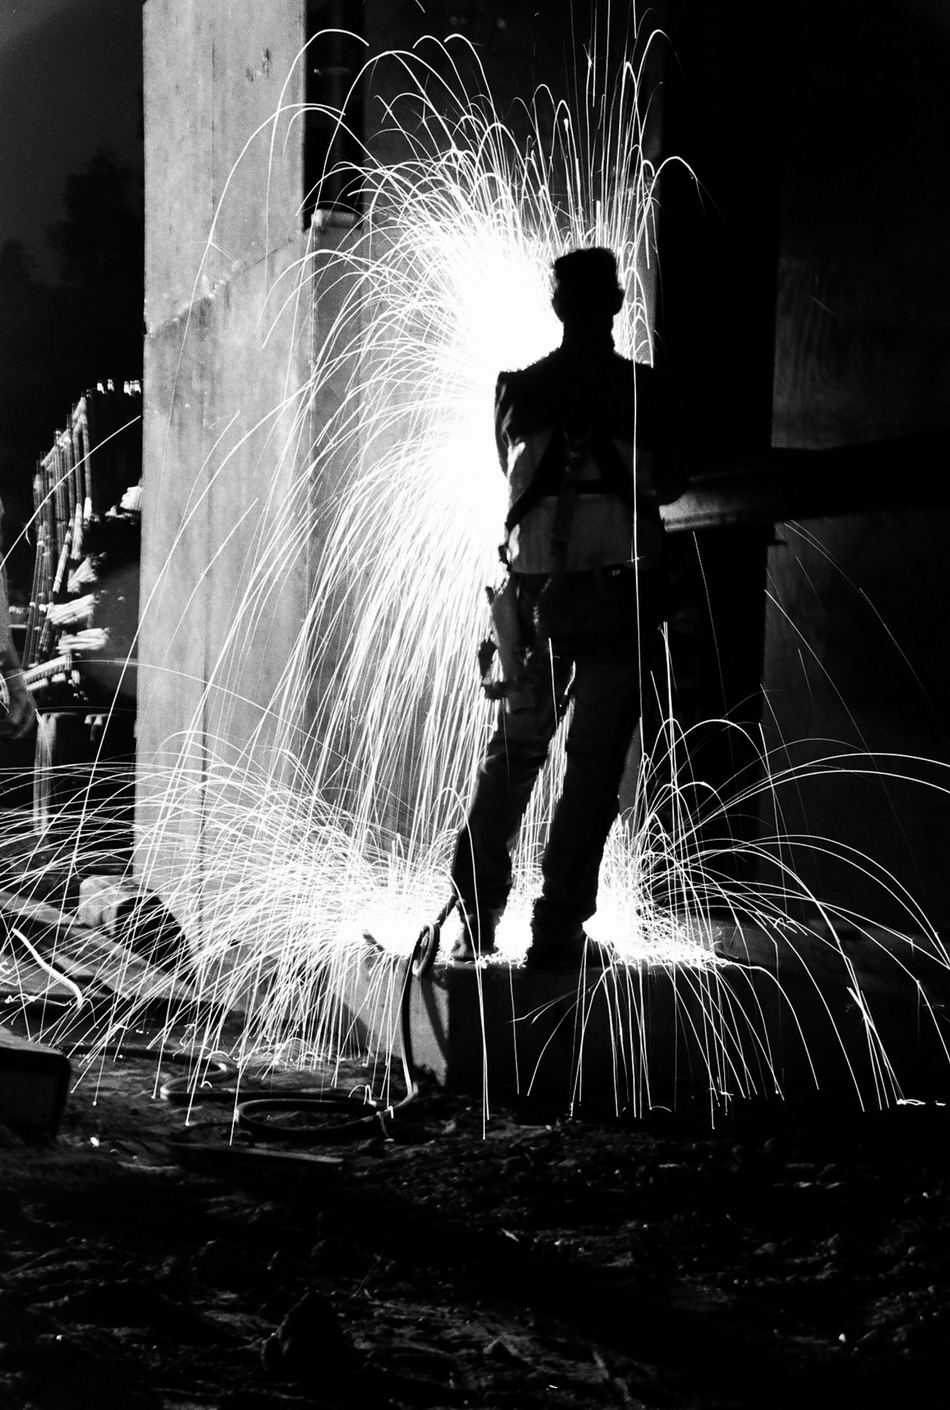 Night Welding